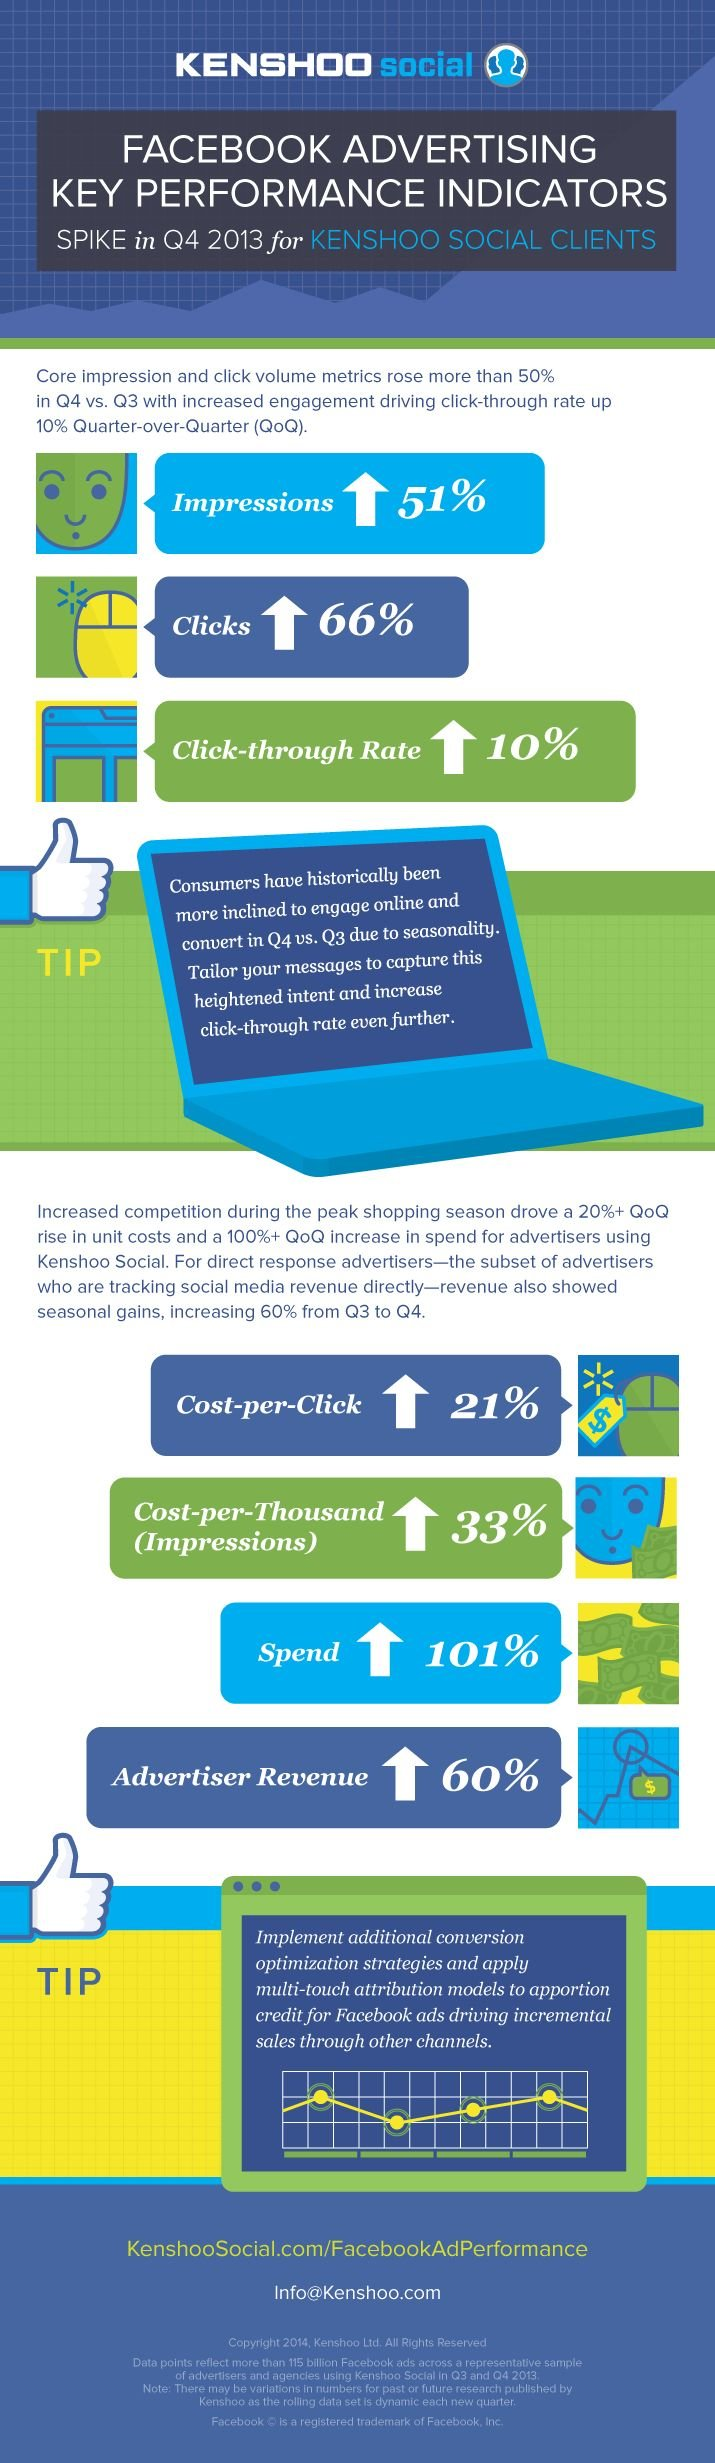 Facebook Advertising Key Performance Indicators #infographic